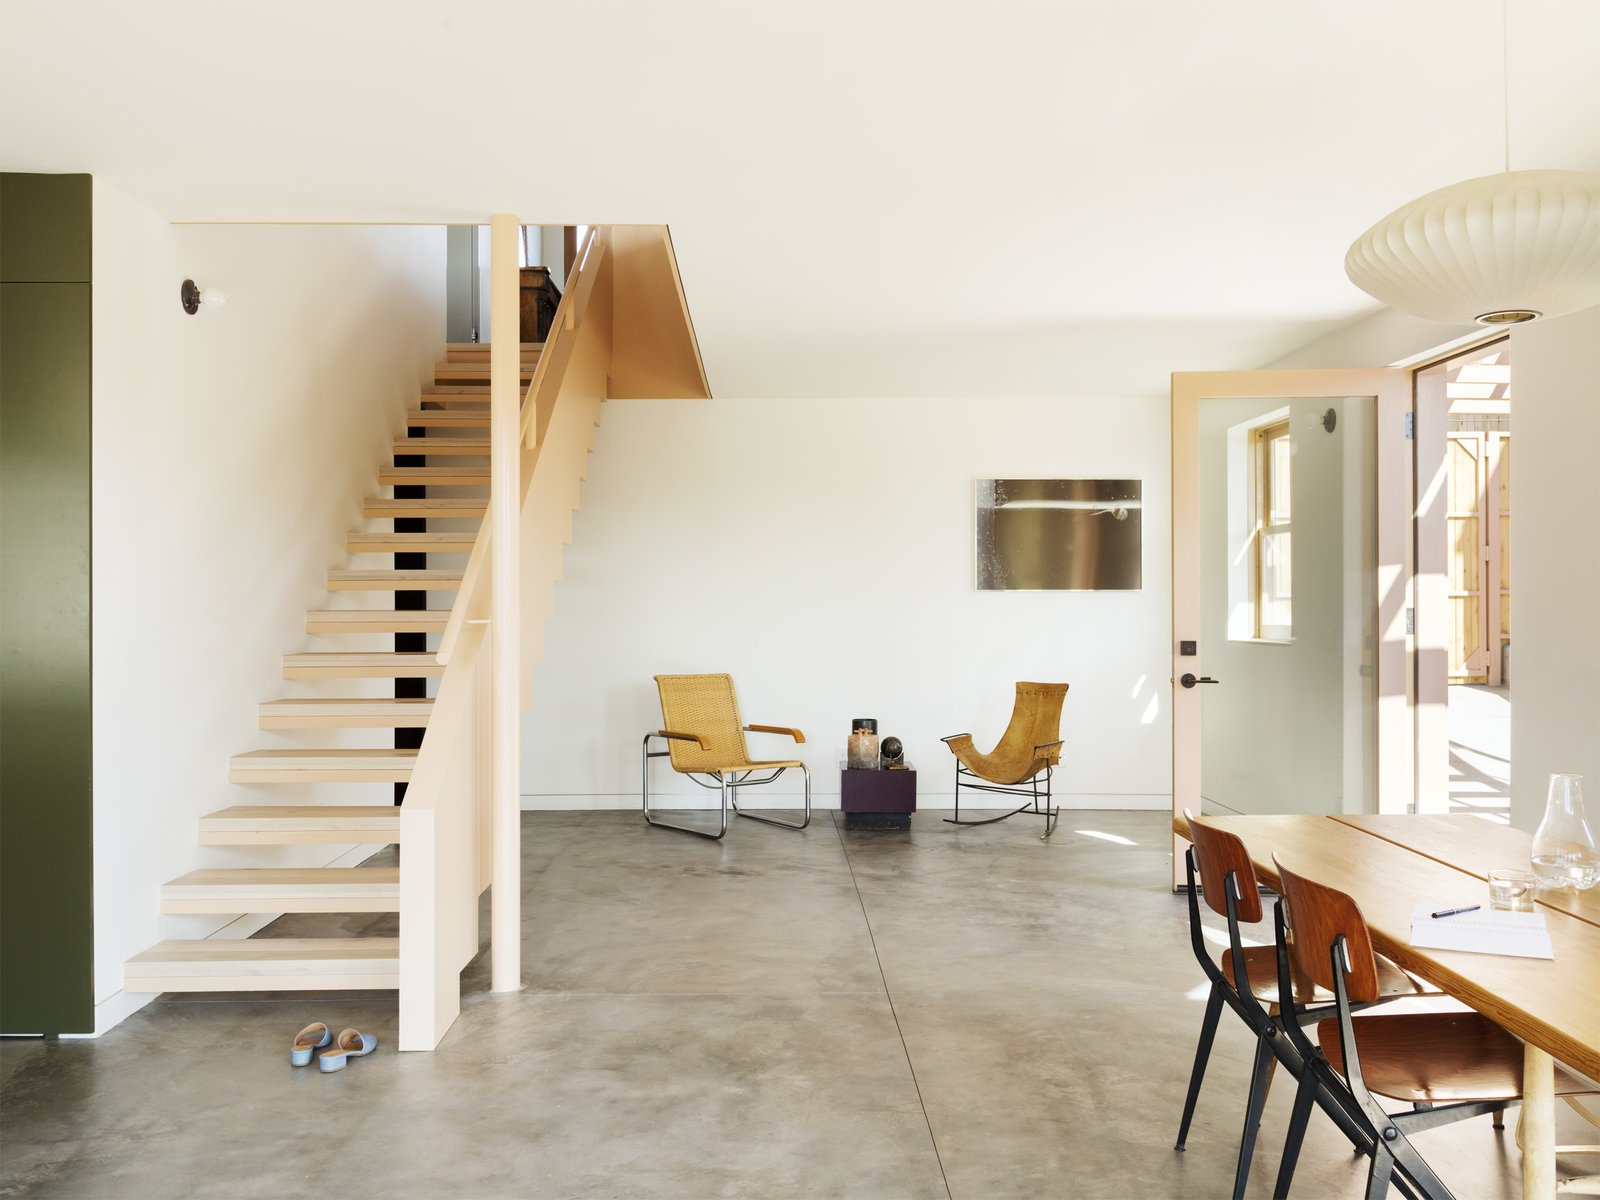 Chair, Concrete Floor, Wood Tread, Wood Railing, Living Room, End Tables, Pendant Lighting, and Table Lighting  Photo 4 of 14 in Grids and Colors Inspire the Renovation of a Graphic Designer's Pink L.A. Bungalow